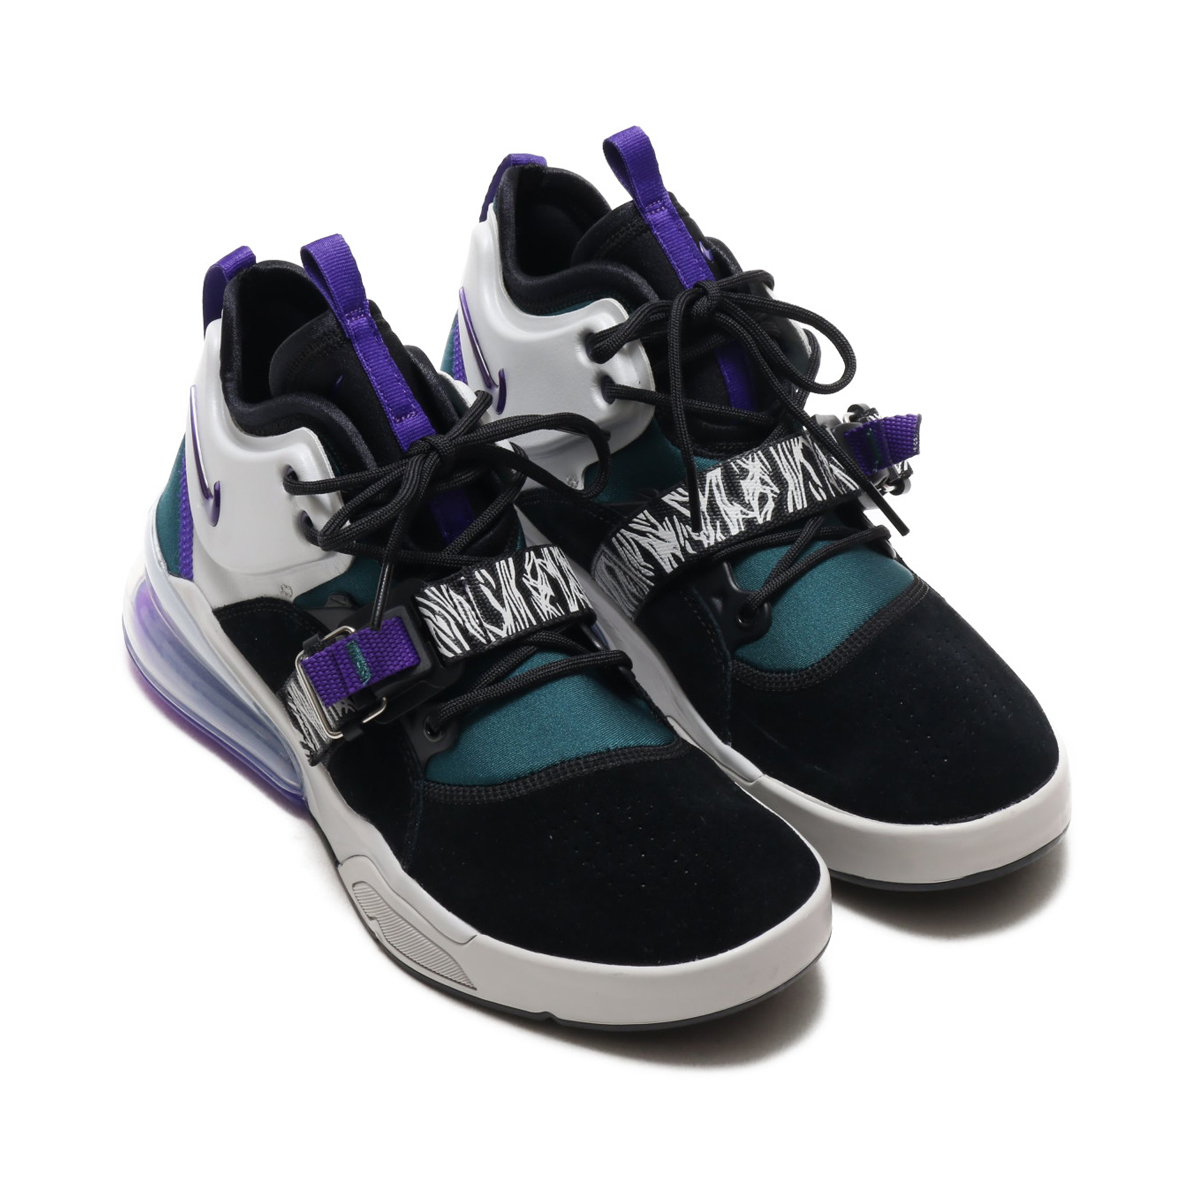 c8a1d439765f NIKE AIR FORCE 270 (Nike air force 270) BLACK COURT PURPLE-DK ATOMIC TEAL  18SU-S